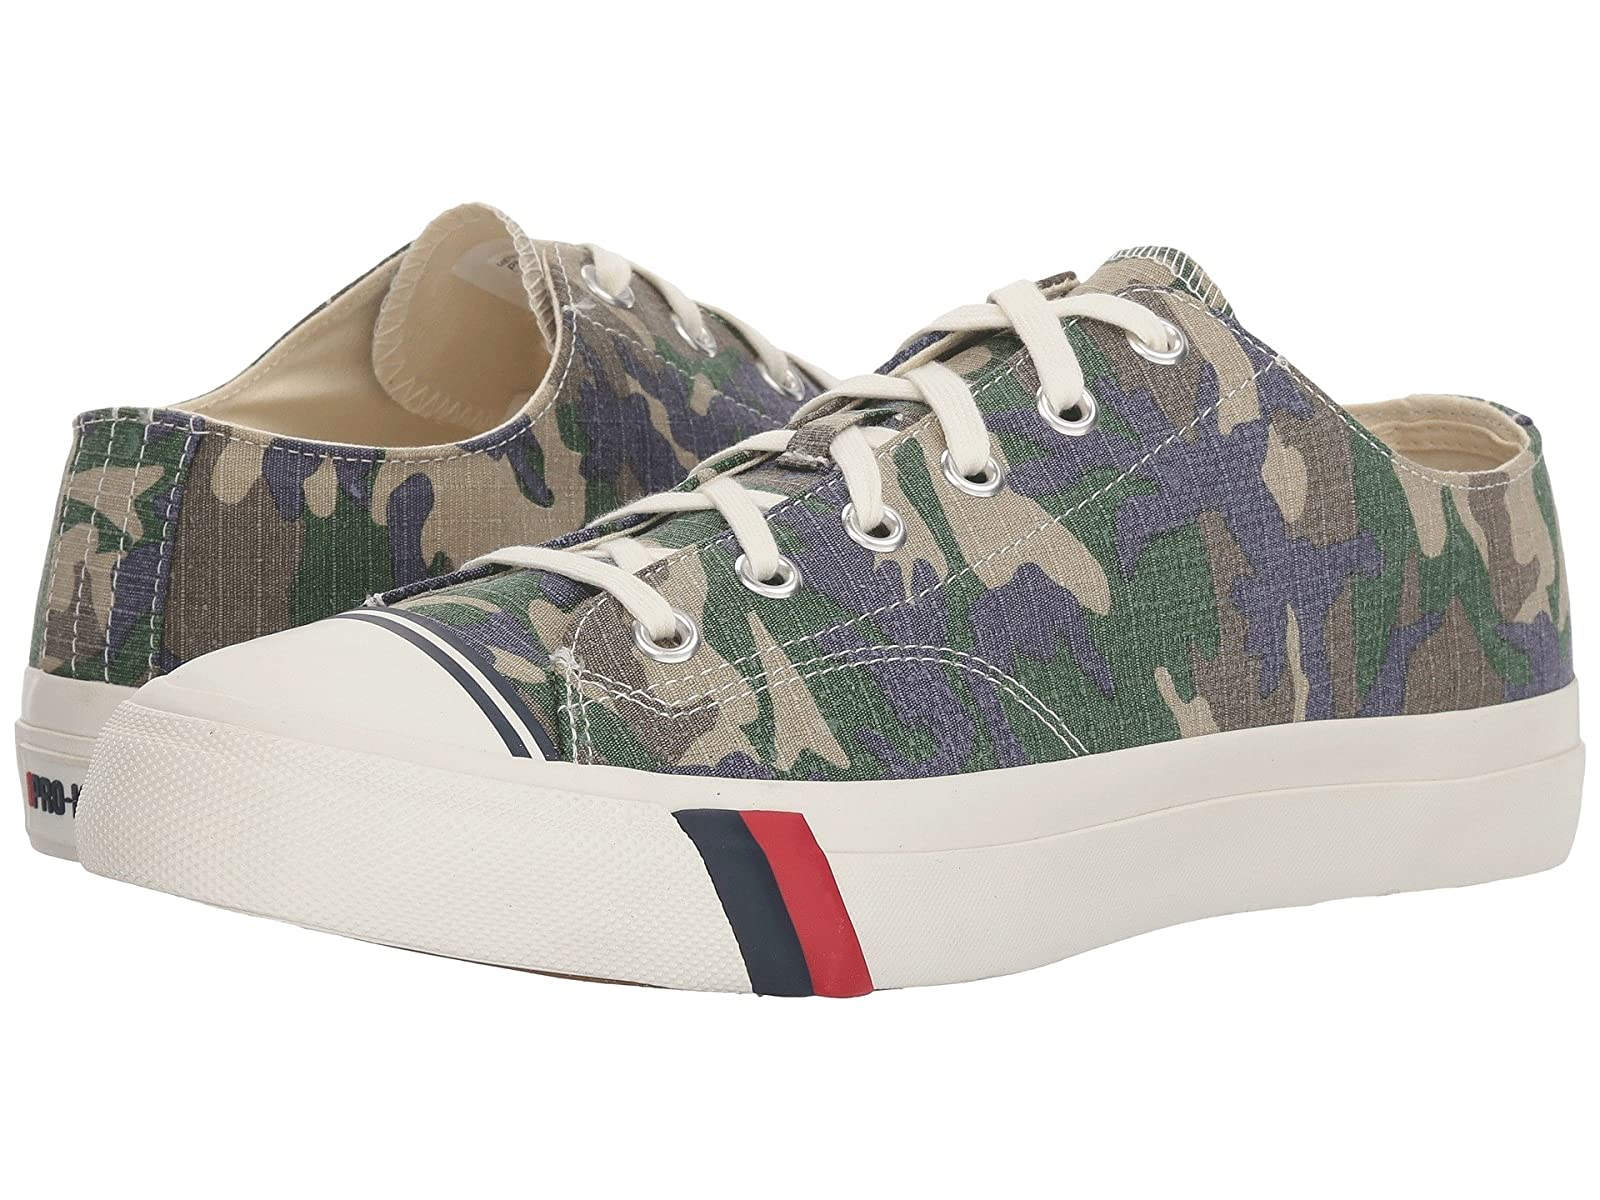 Keds Royal Lo Ripstop CamoAtmospheric grades have affordable shoes